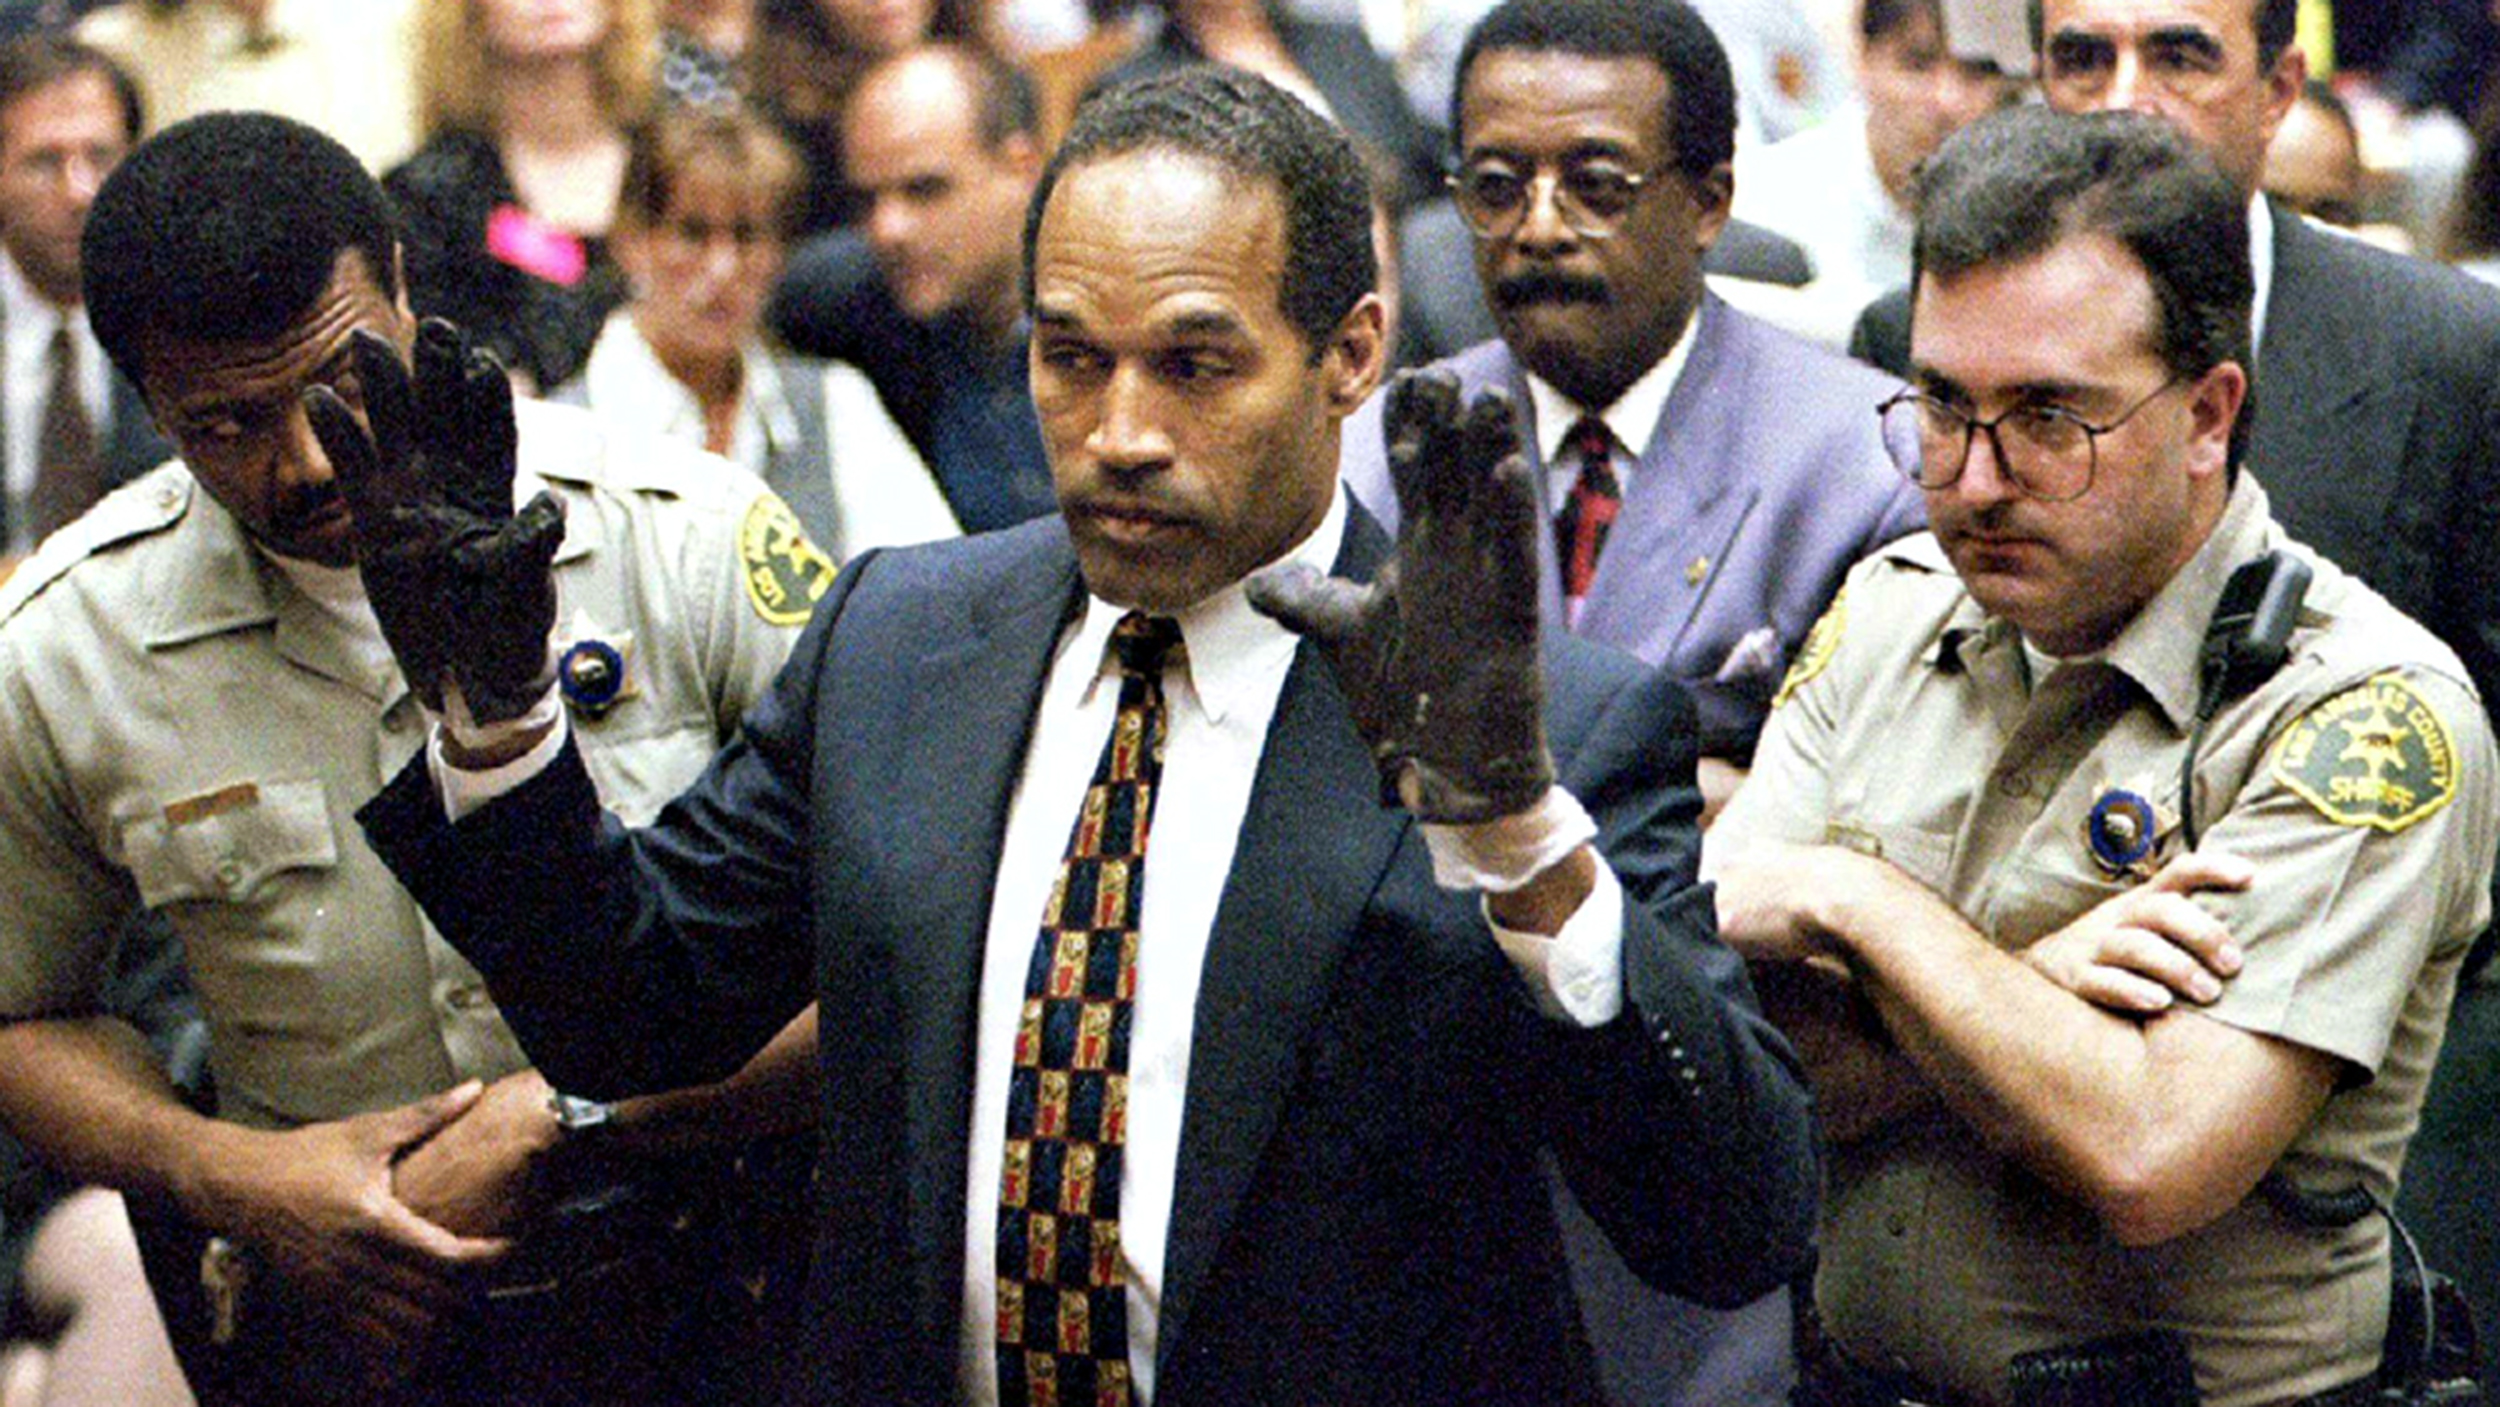 O.J. Simpson holds up his hands to the jury wearing the infamous gloves found at the crime scene and his home in this June 15, 1995 file photo. More than a decade after he was acquitted of charges that he murdered his ex-wife Nicole Brown Simpson and her friend Ron Goldman, O.J. will describe in a televised interview how he would have committed the crime if he was the one responsible in a special to air on the Fox Network November 27 and 29, 2006.